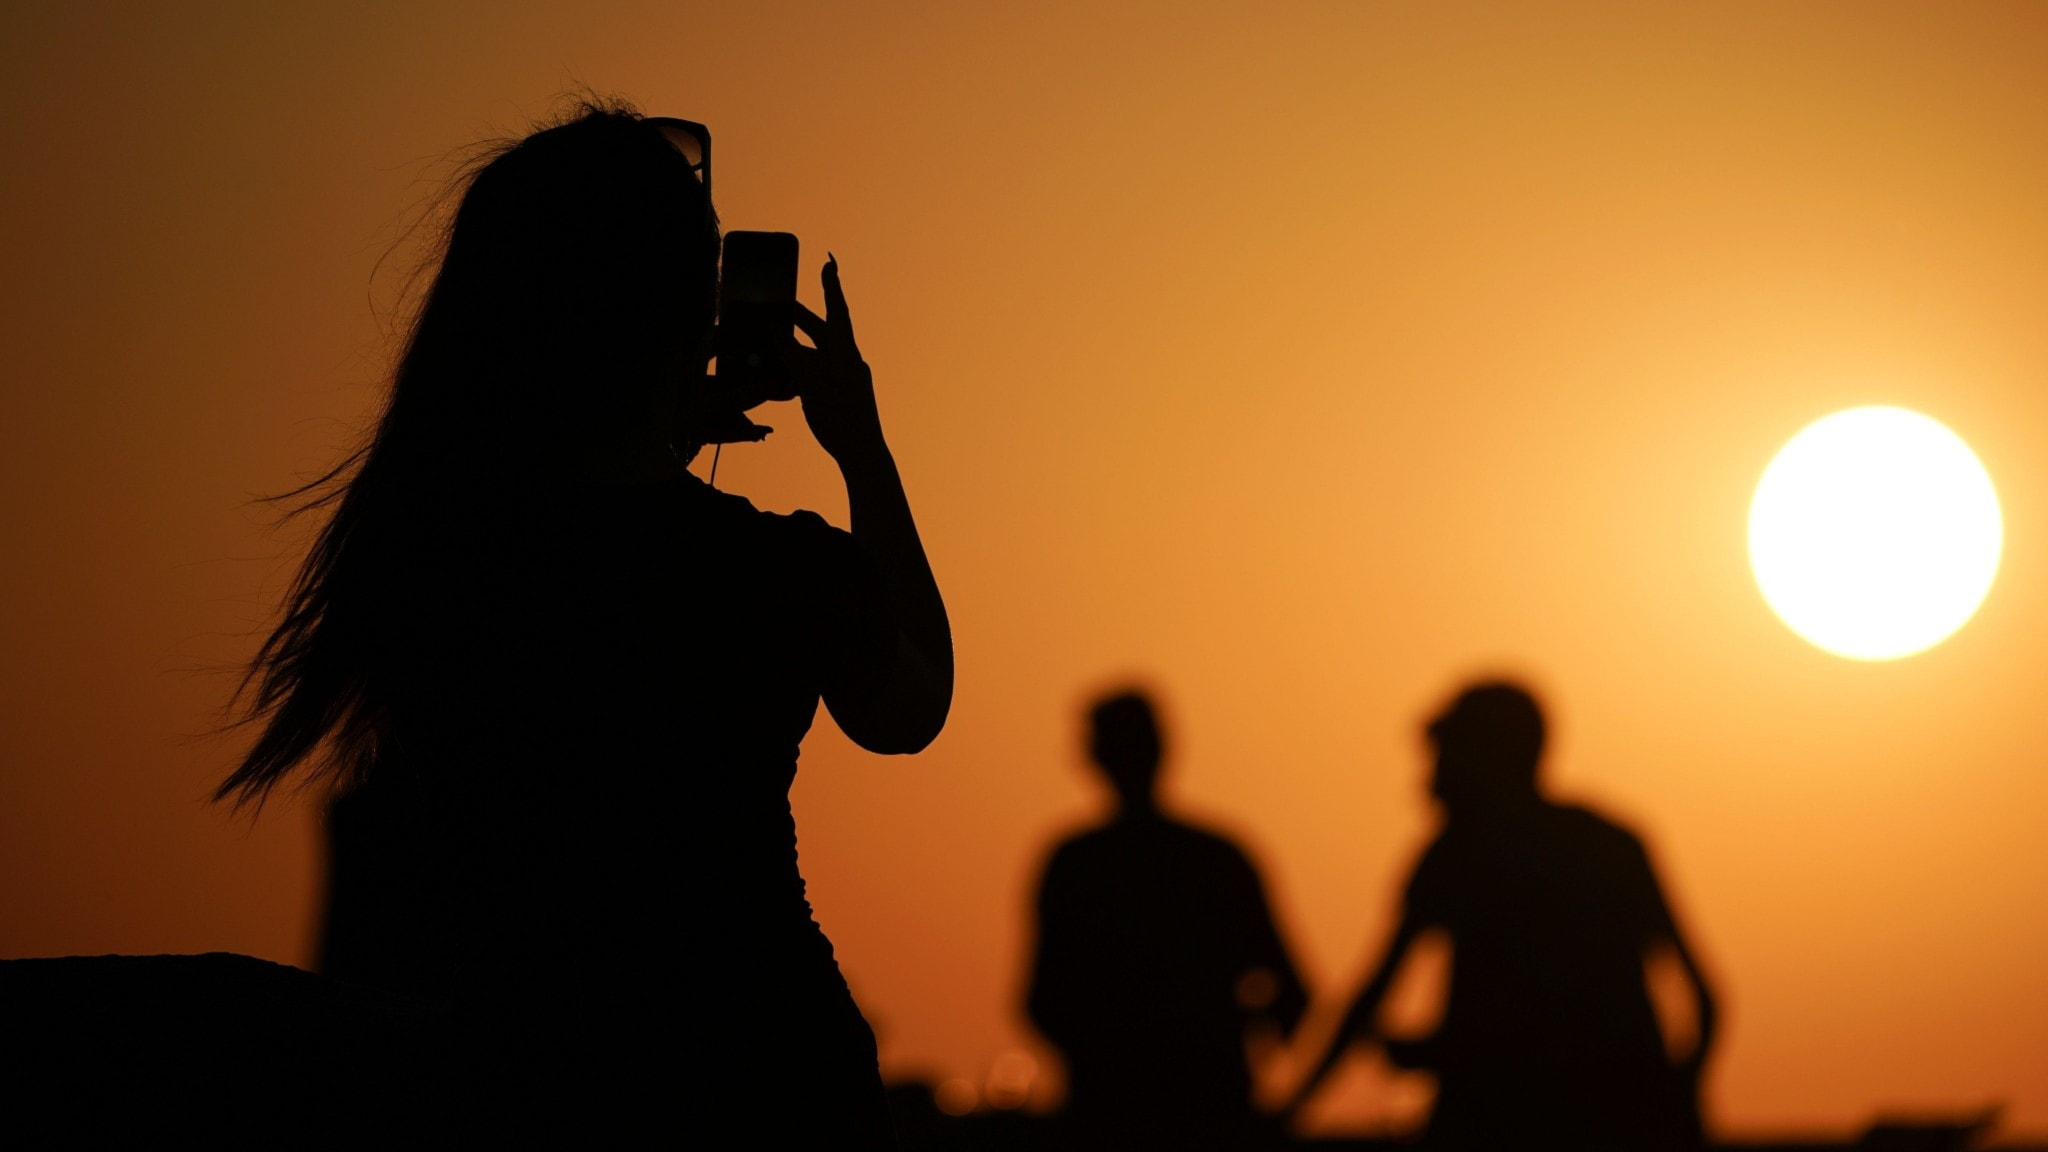 Three people in silhouette against the setting sun. One person holds up her phone, and it looks like she may be taking a picture of the sunset.